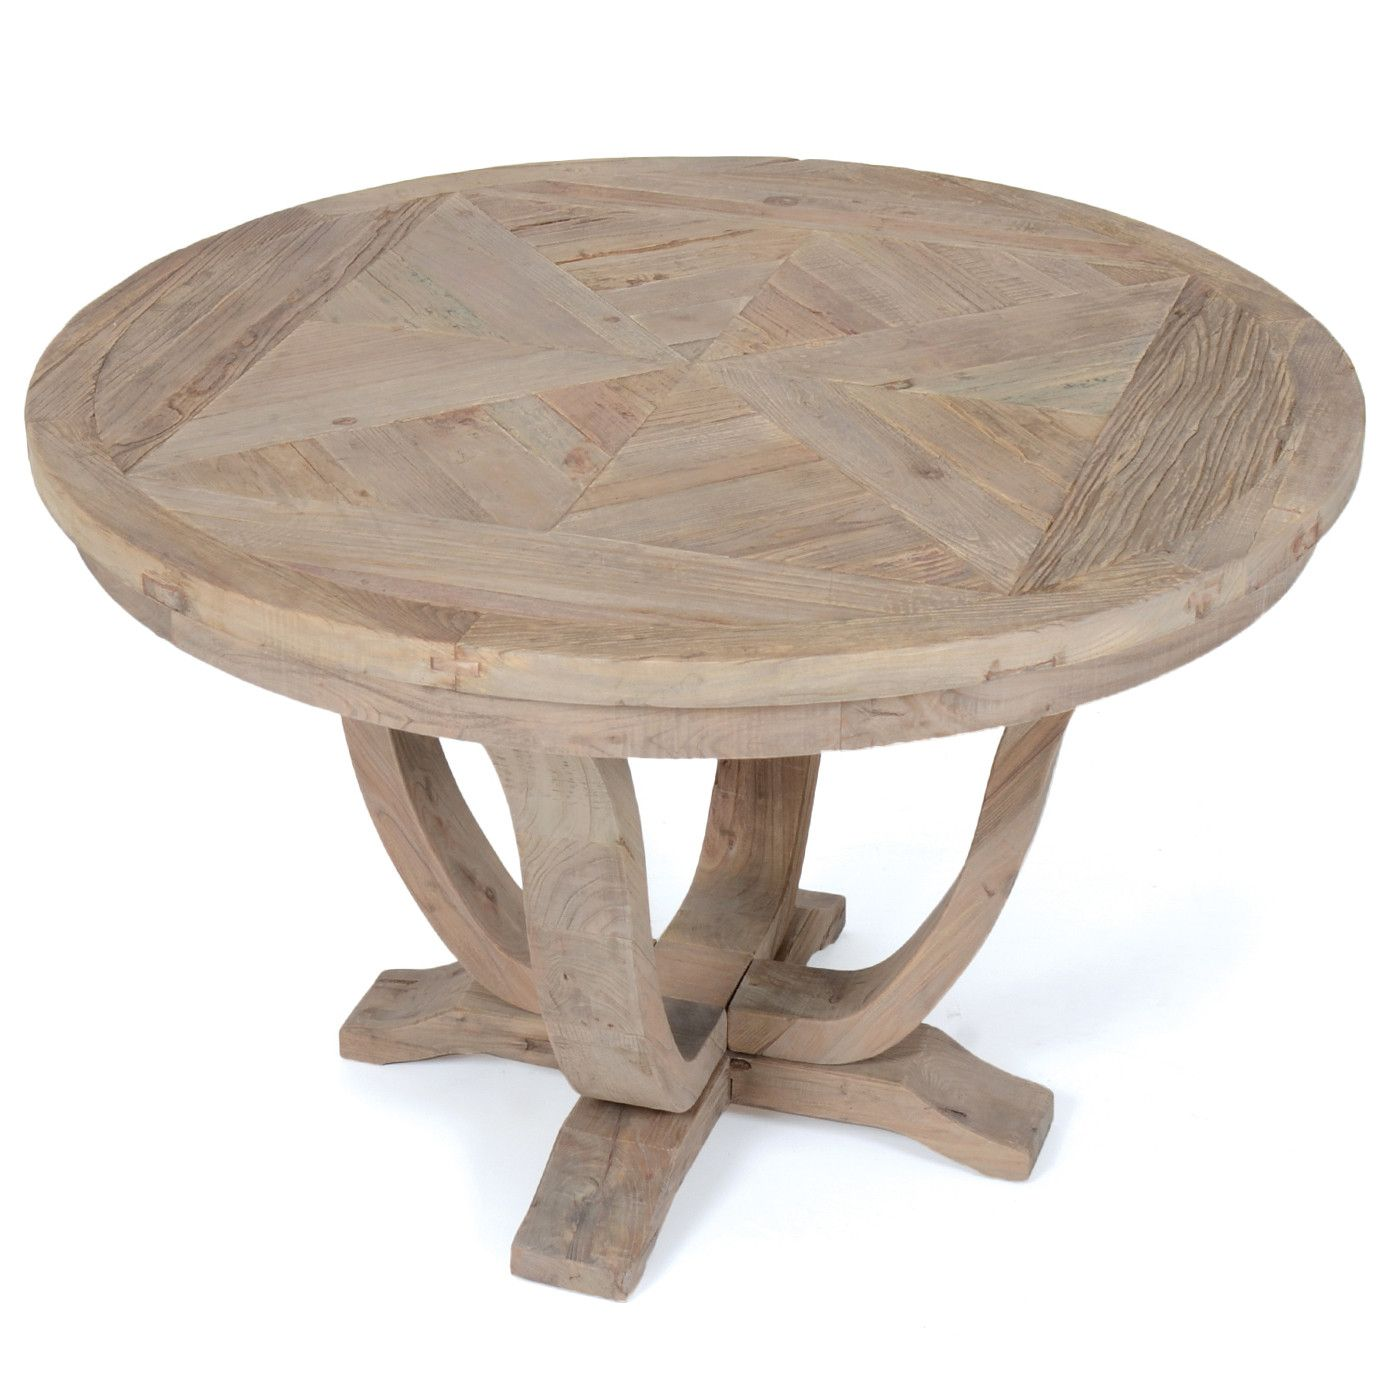 Rustic Round Parquet Wood Dining Table | Woodwaves